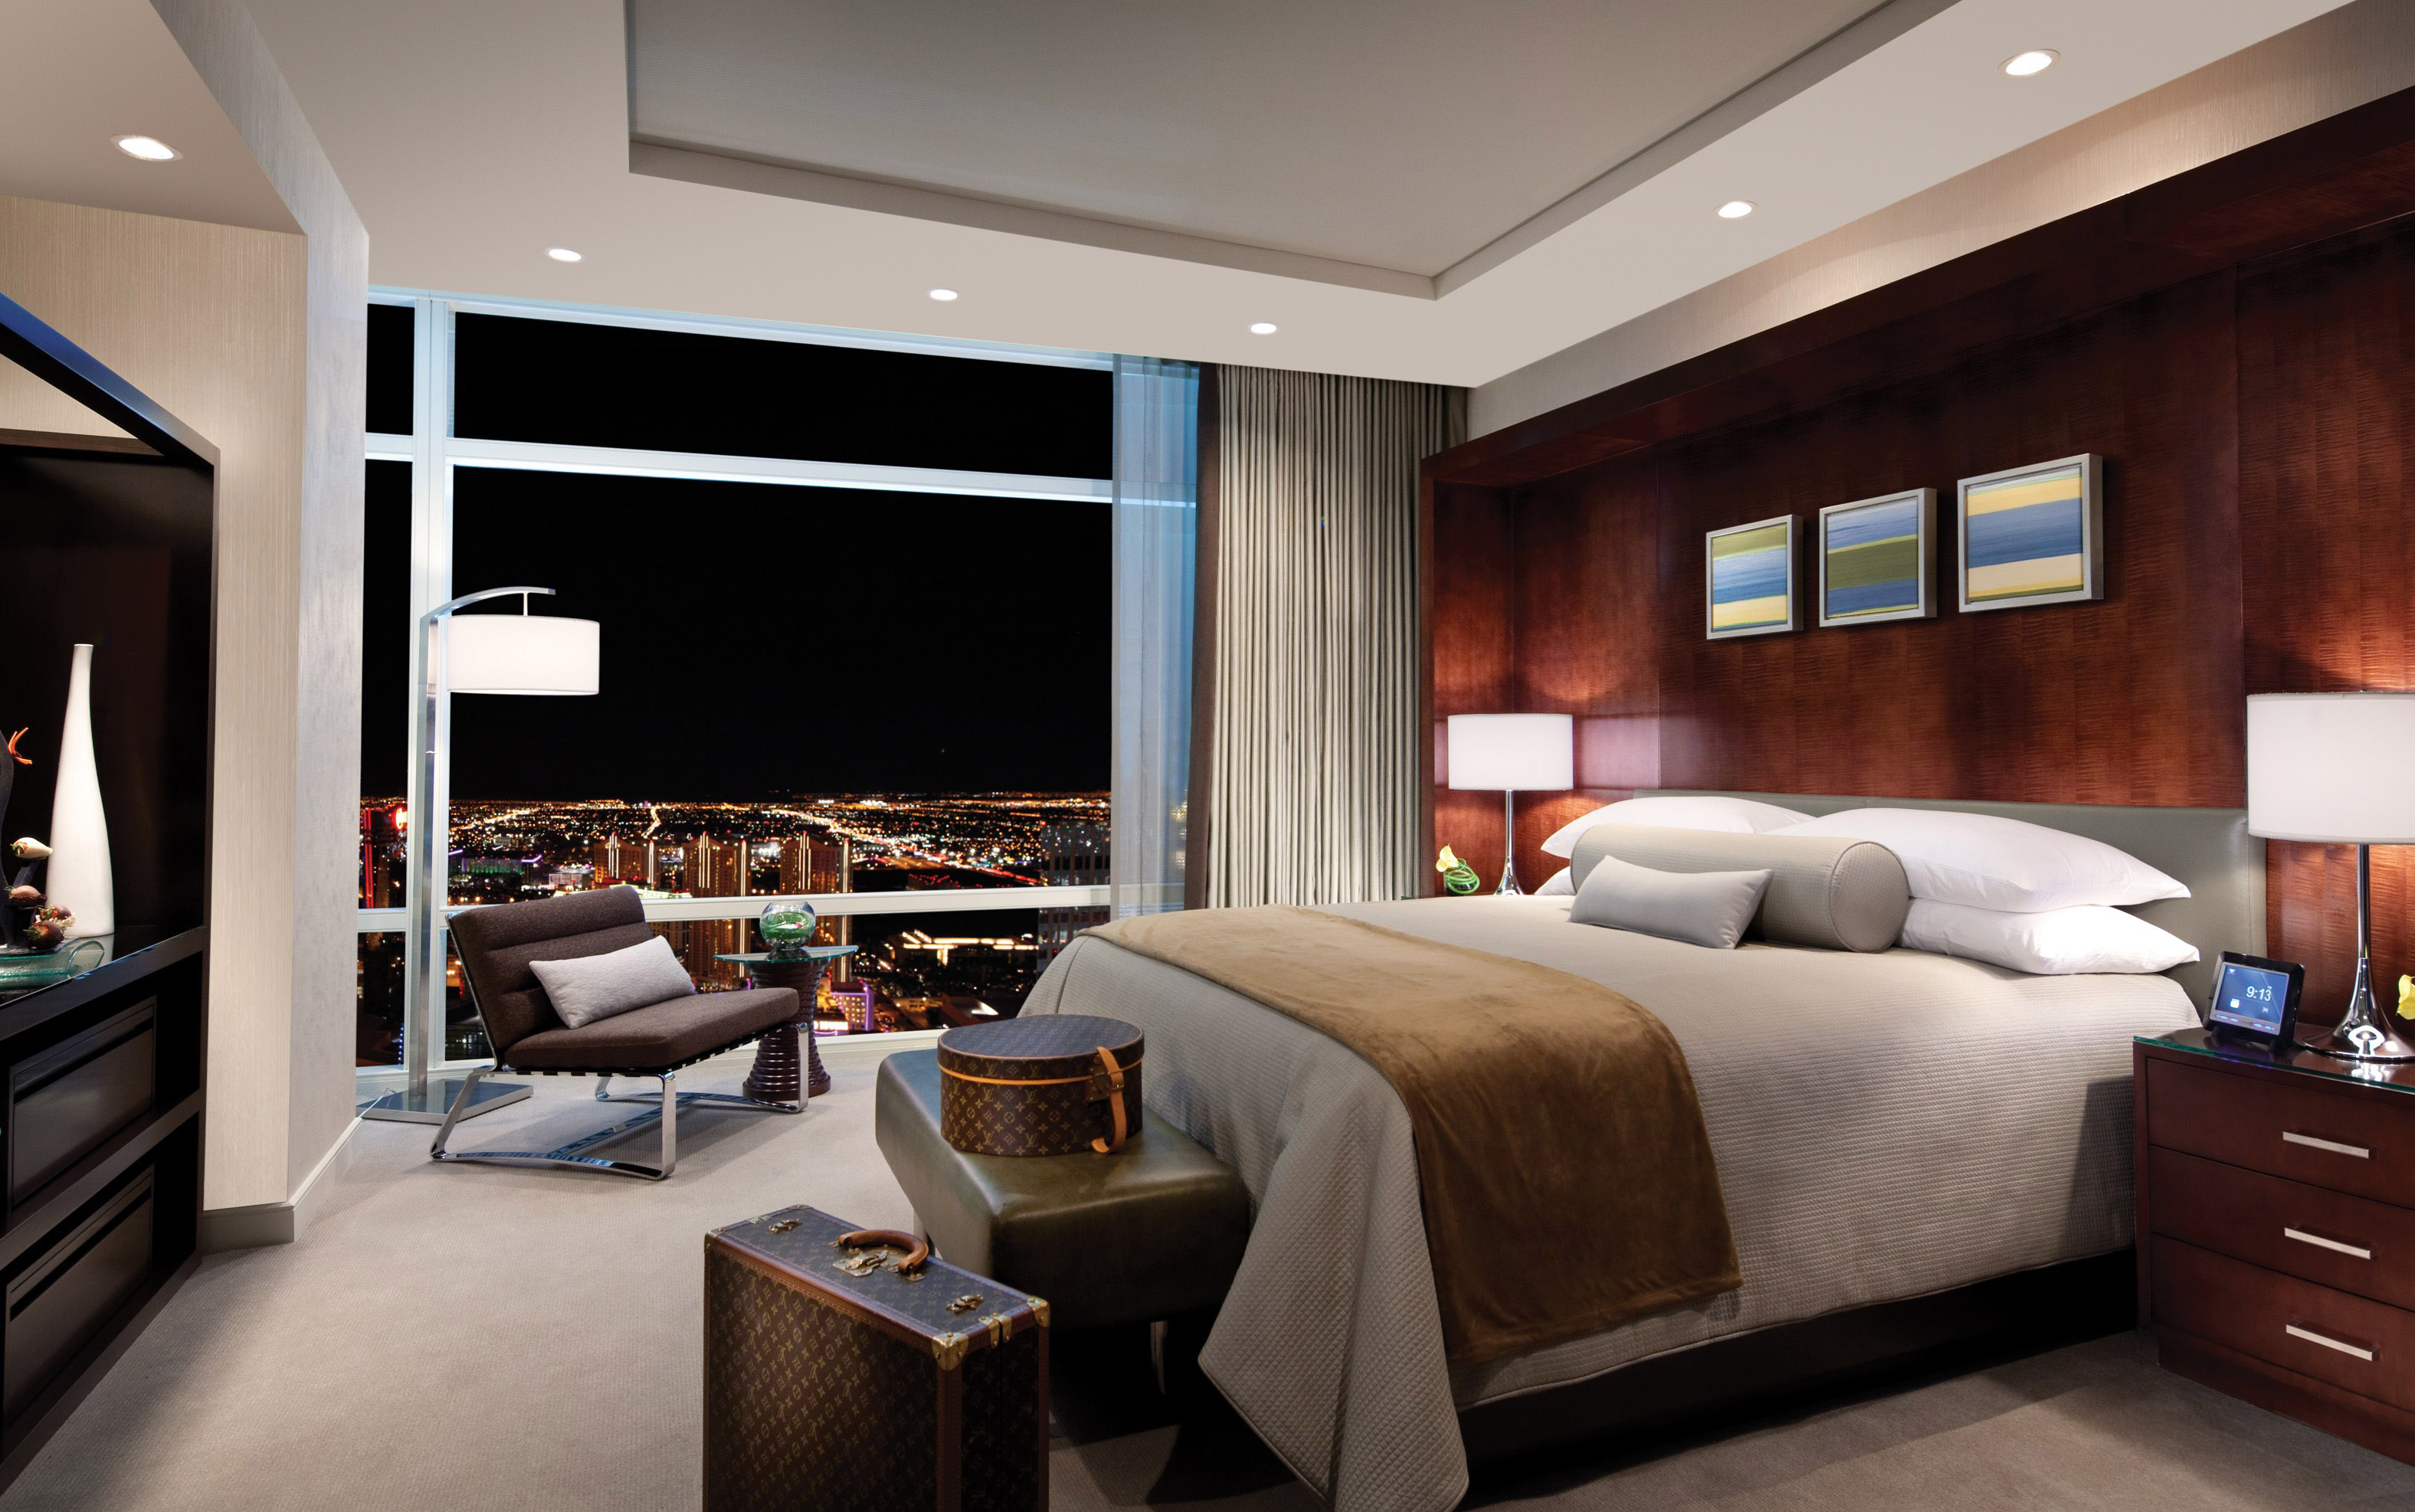 Sky Suites At Aria Resort Casino Earns Coveted Aaa Five Diamond Award Citycenter